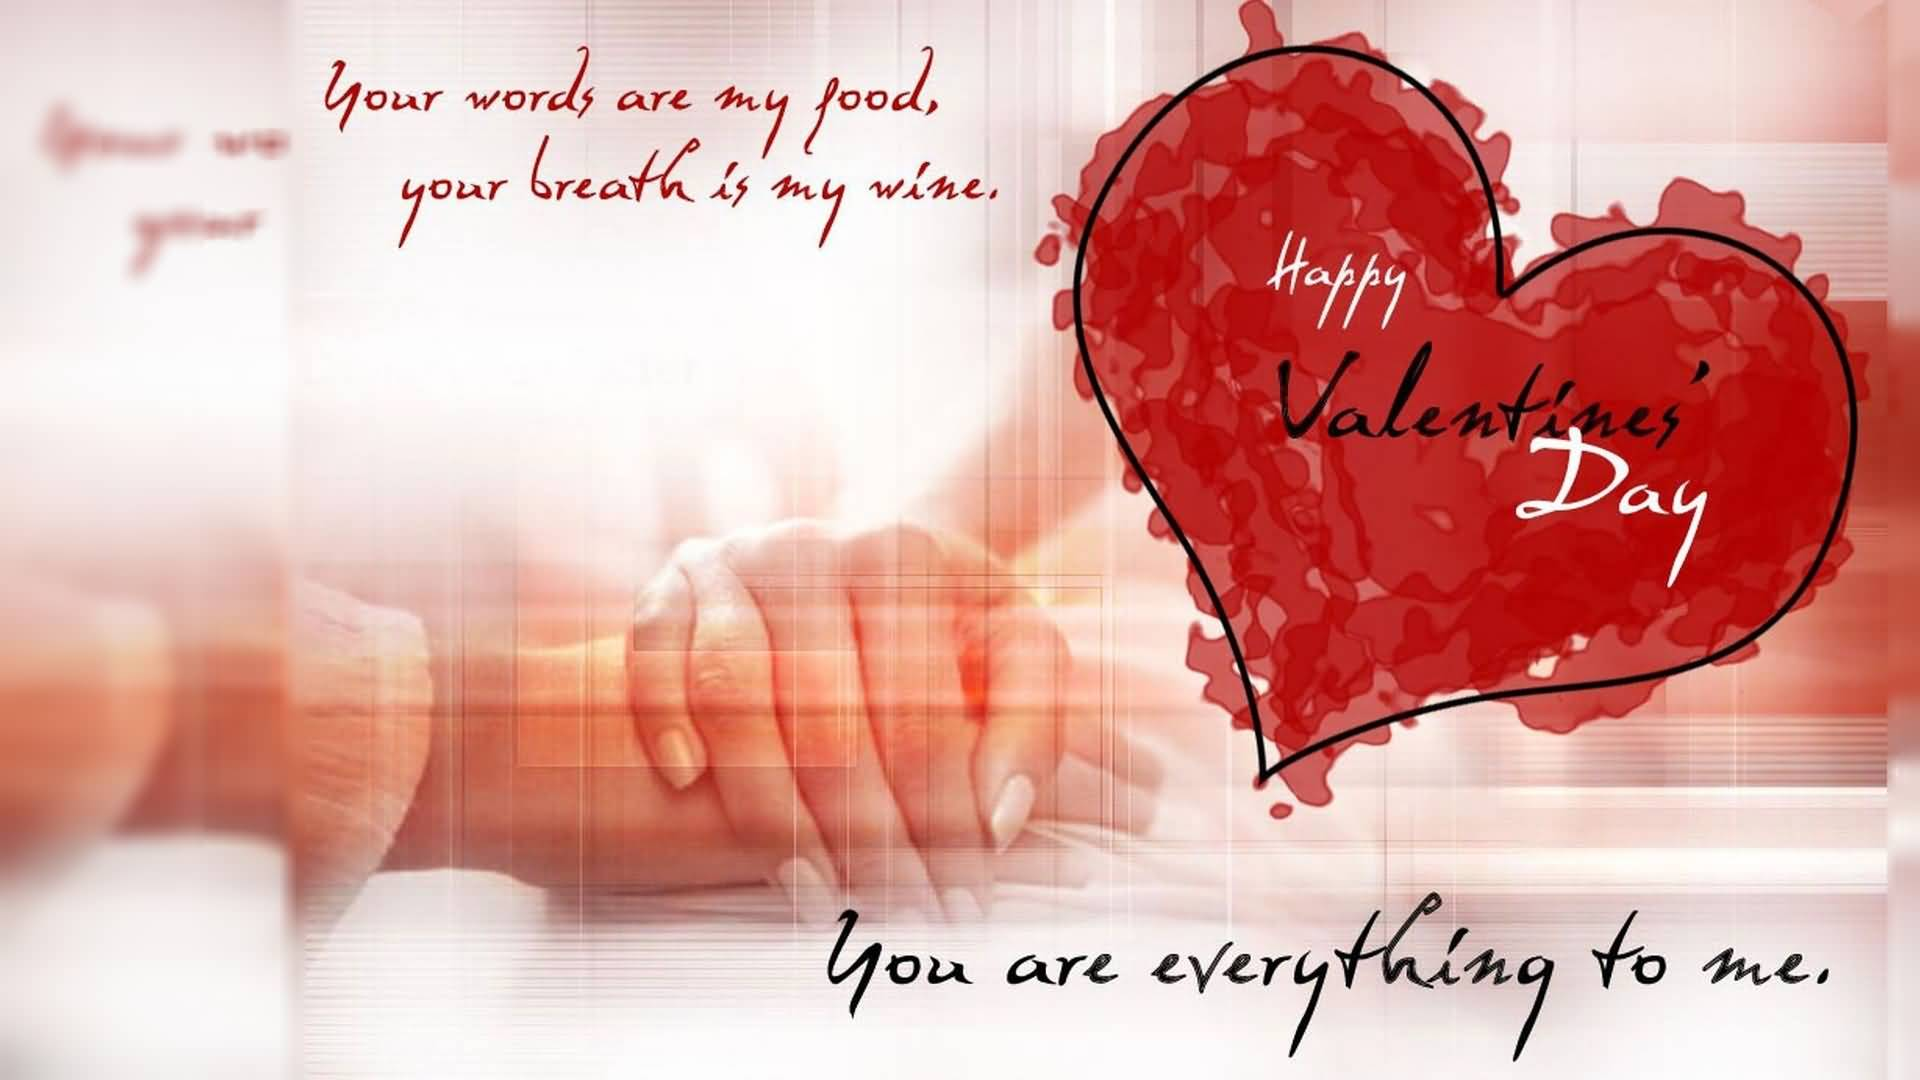 Free Download Valentines Day Quotes Meme Image 19